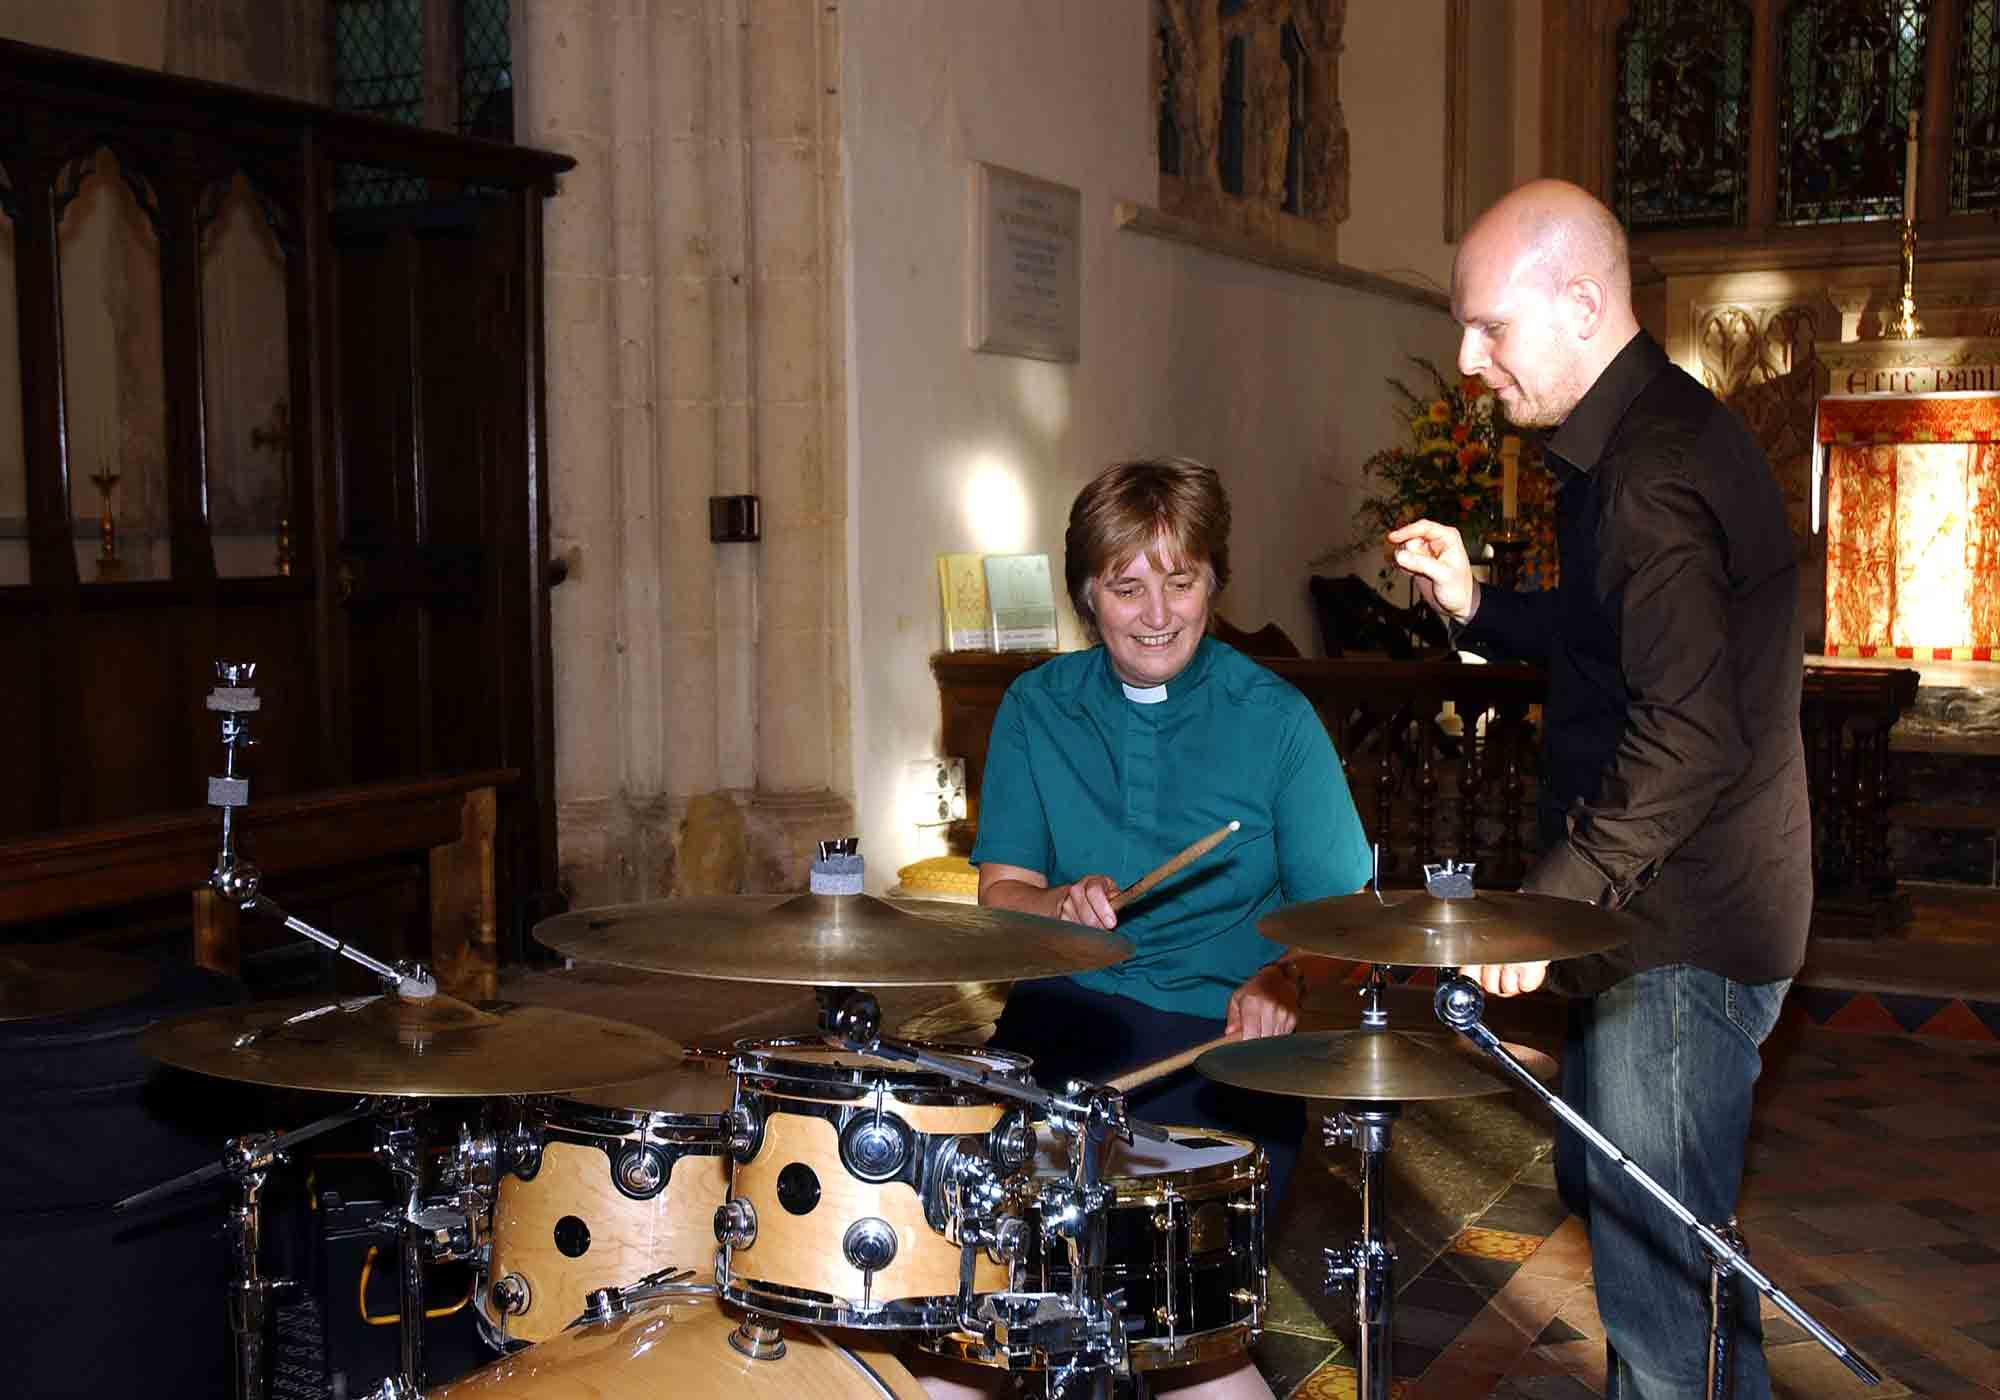 Canon Sue Booys and Phil Selway (Radiohead) drumming workshop